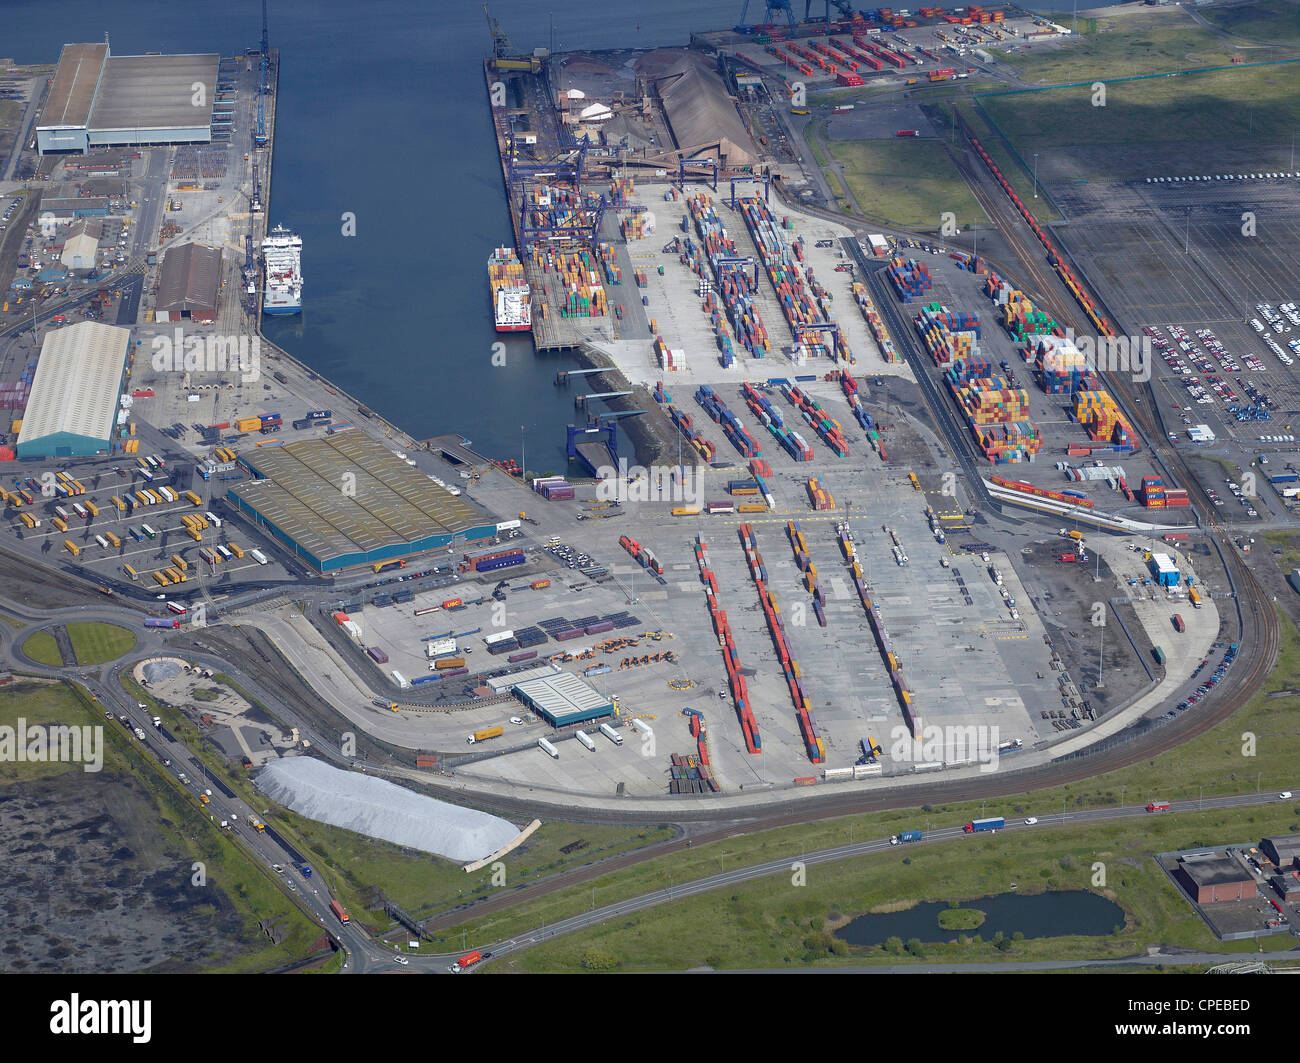 Teesport from the Air, North East England, May 2012 - Stock Image